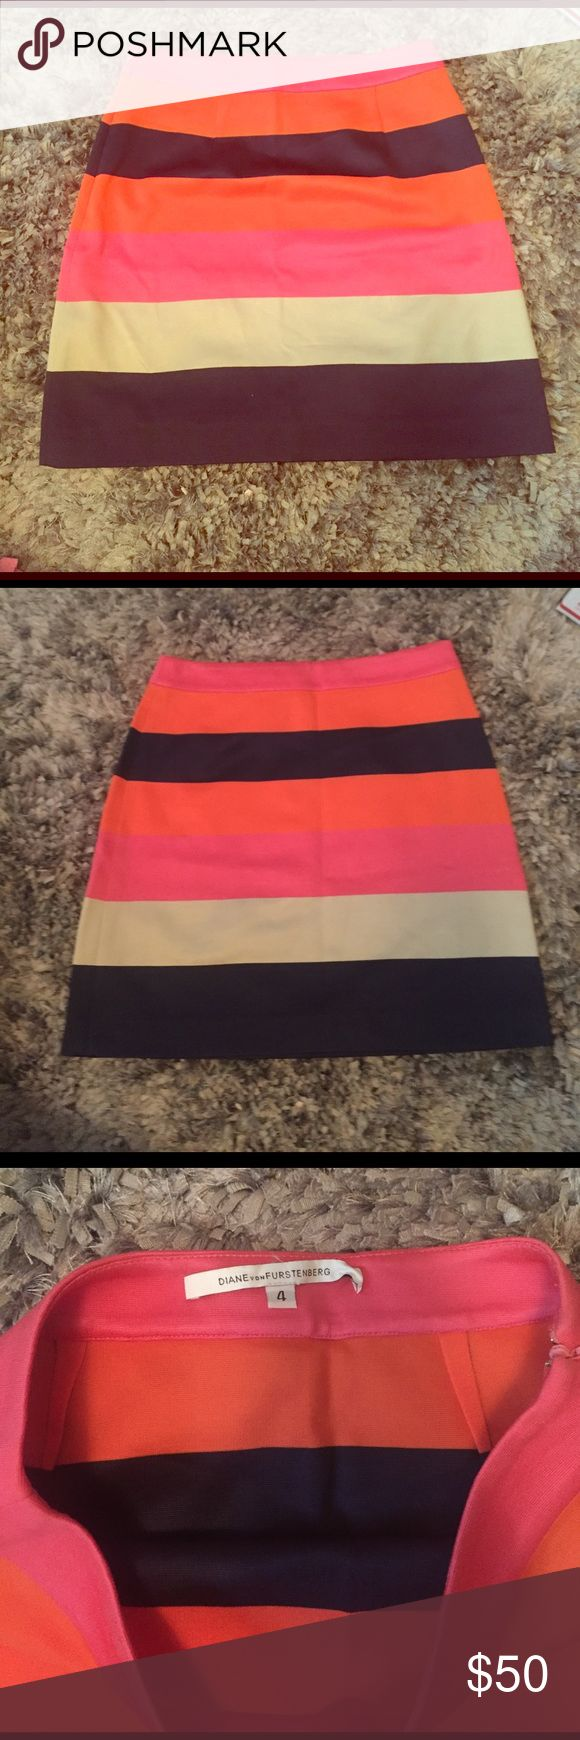 DIANE VON FURSTENBERG SKIRT SIZE 4 Multi color skirt Diane von Furstenberg Skirts Mini